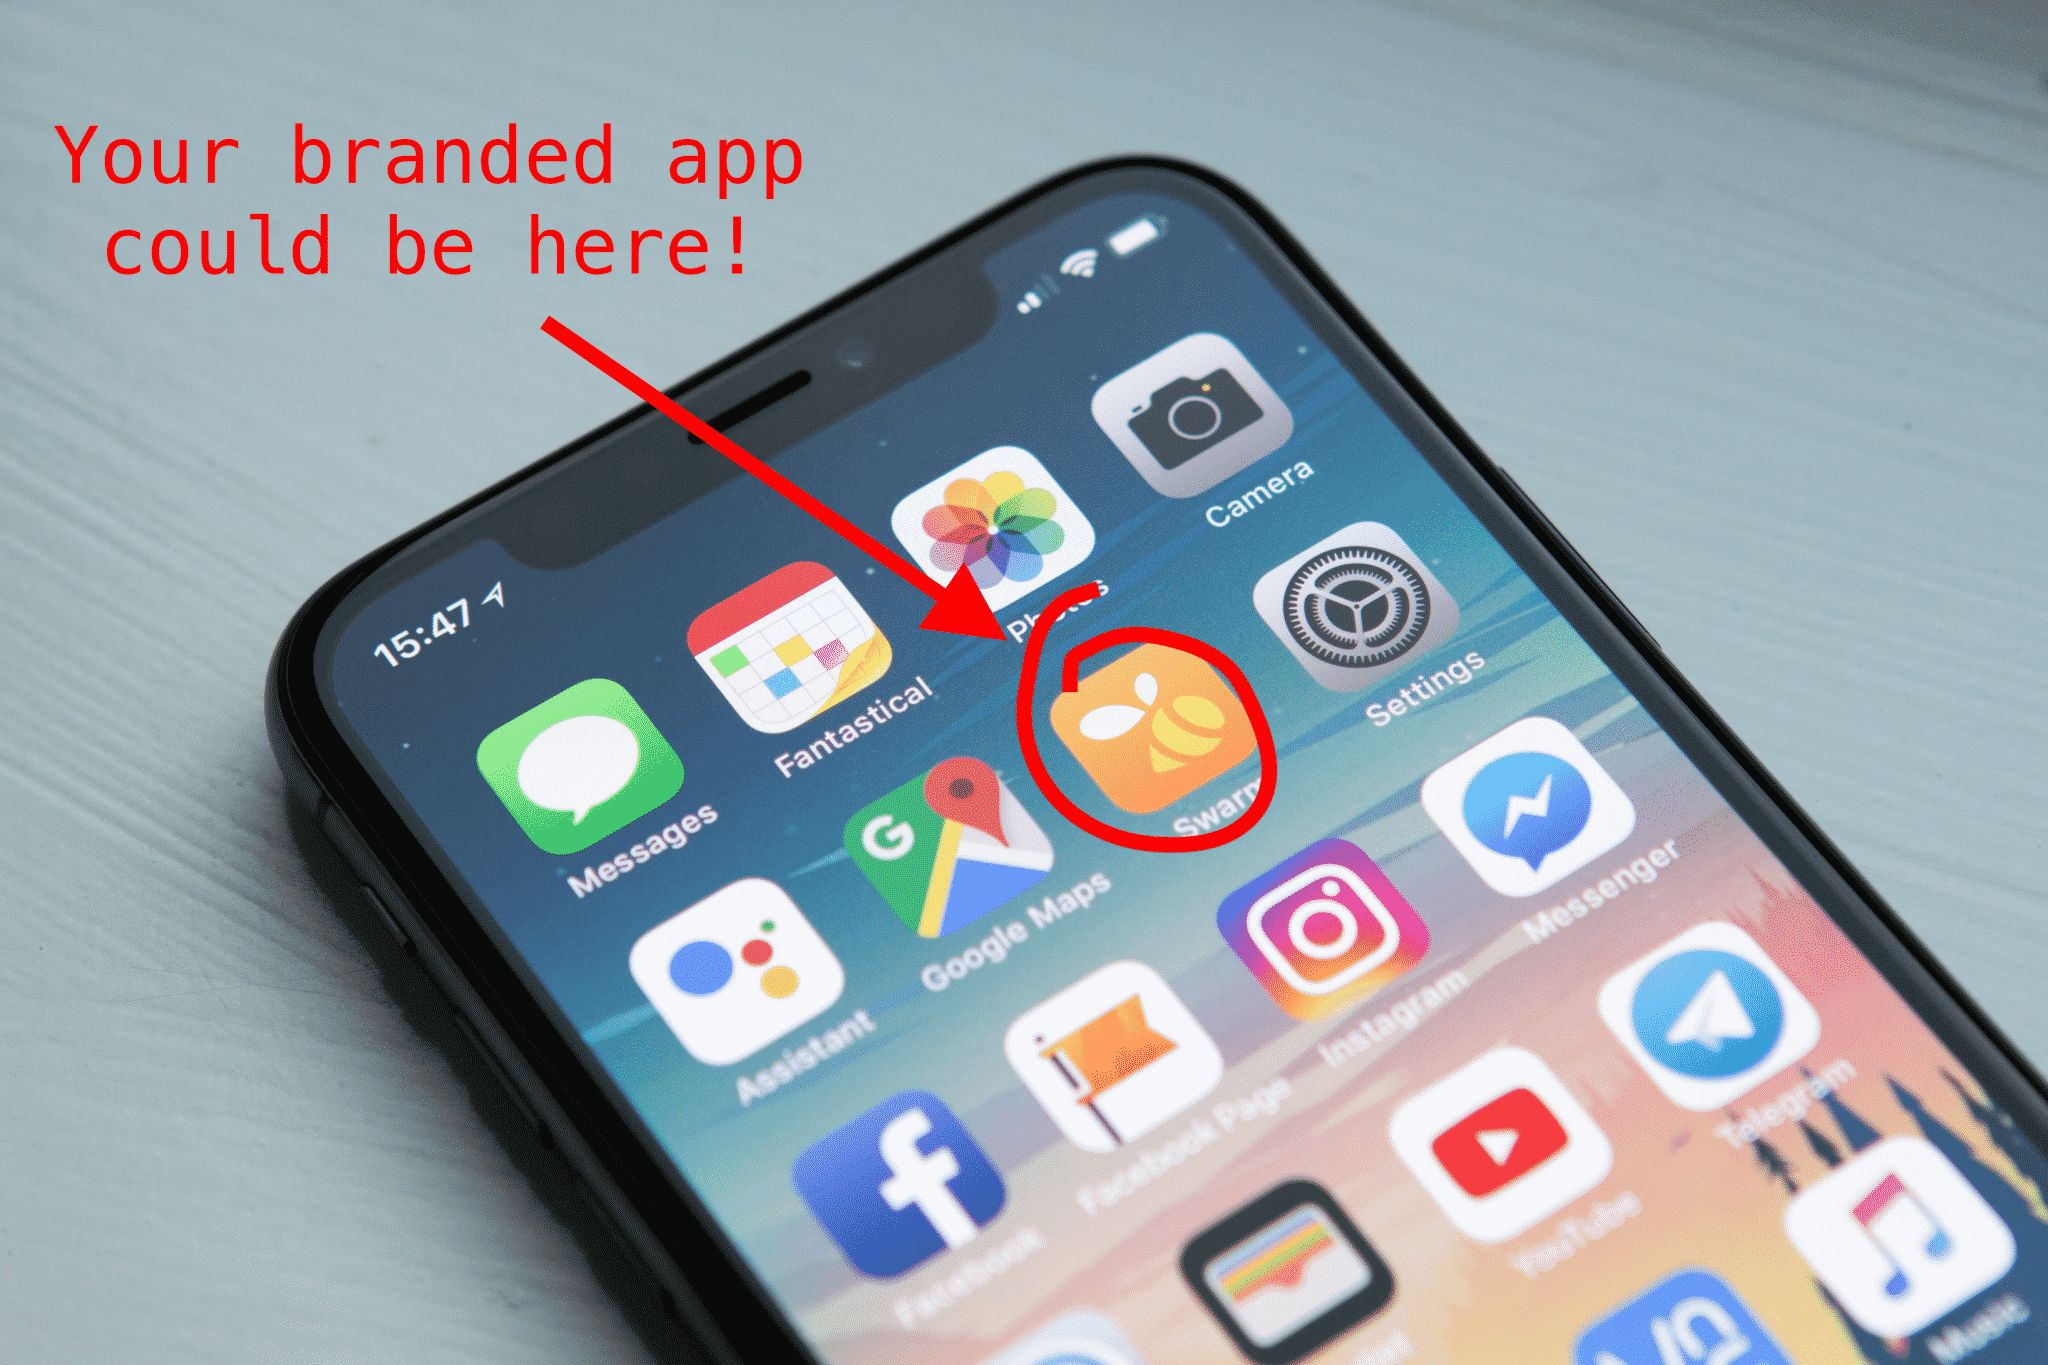 Don't miss out on a branding opportunity - get a native app today!